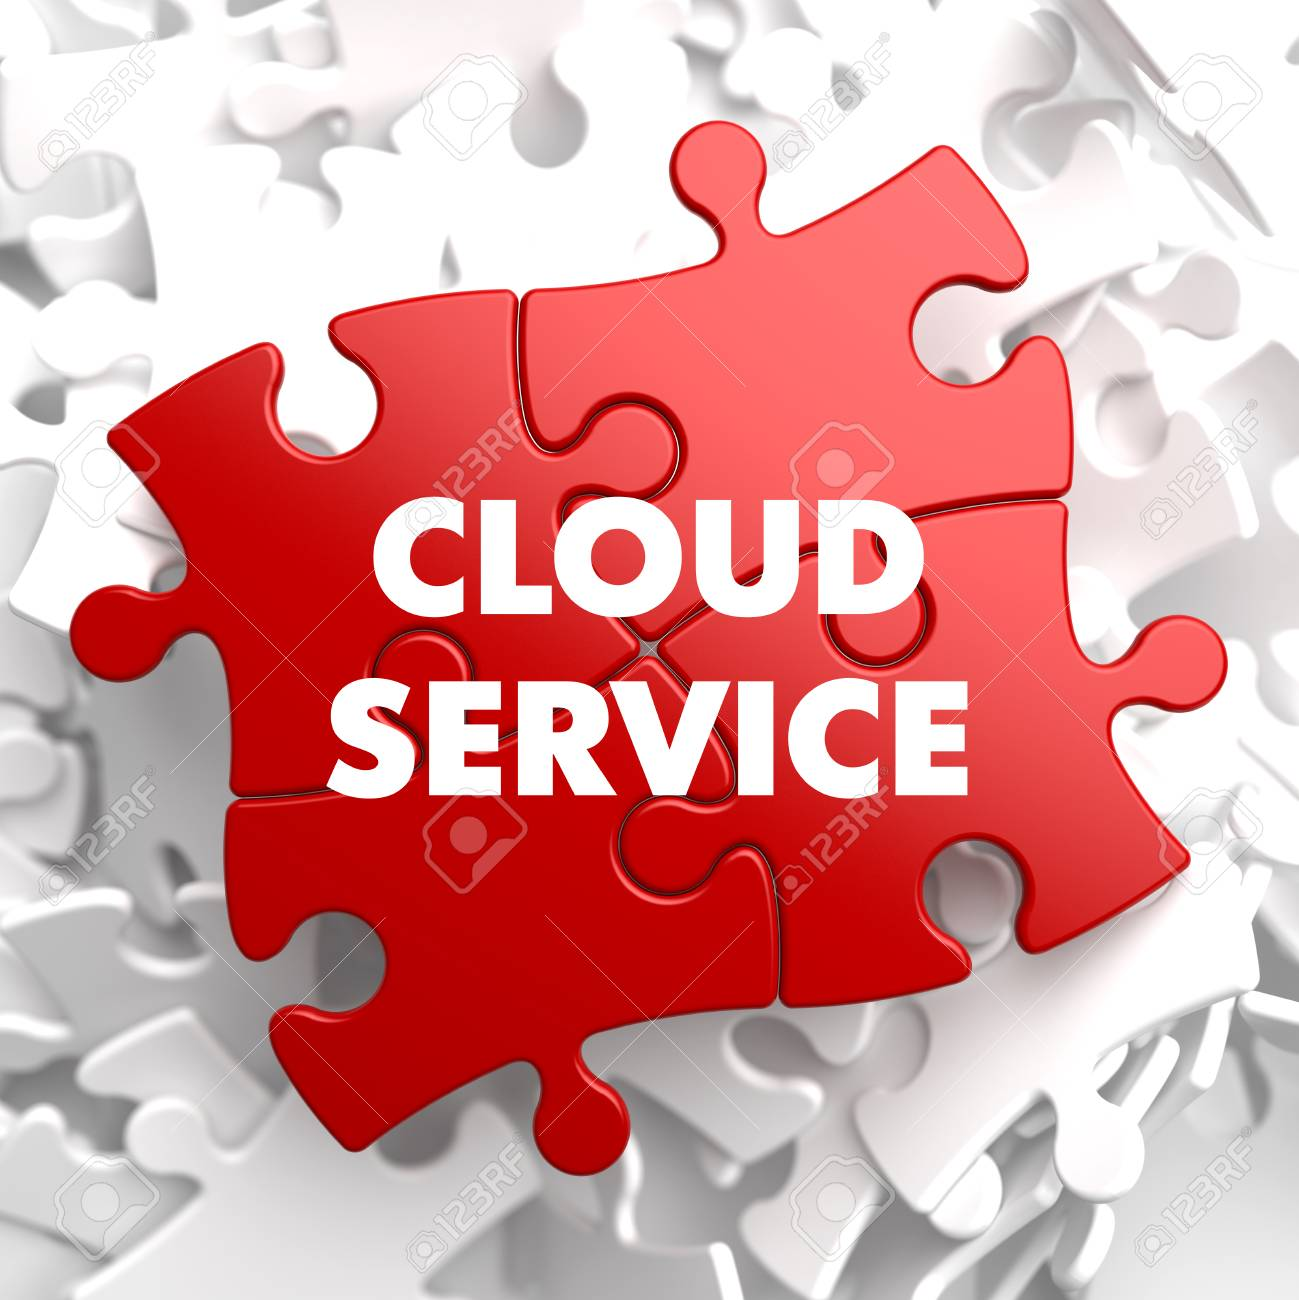 Cloud Service on Red Puzzle on White Background. Stock Photo - 27085419